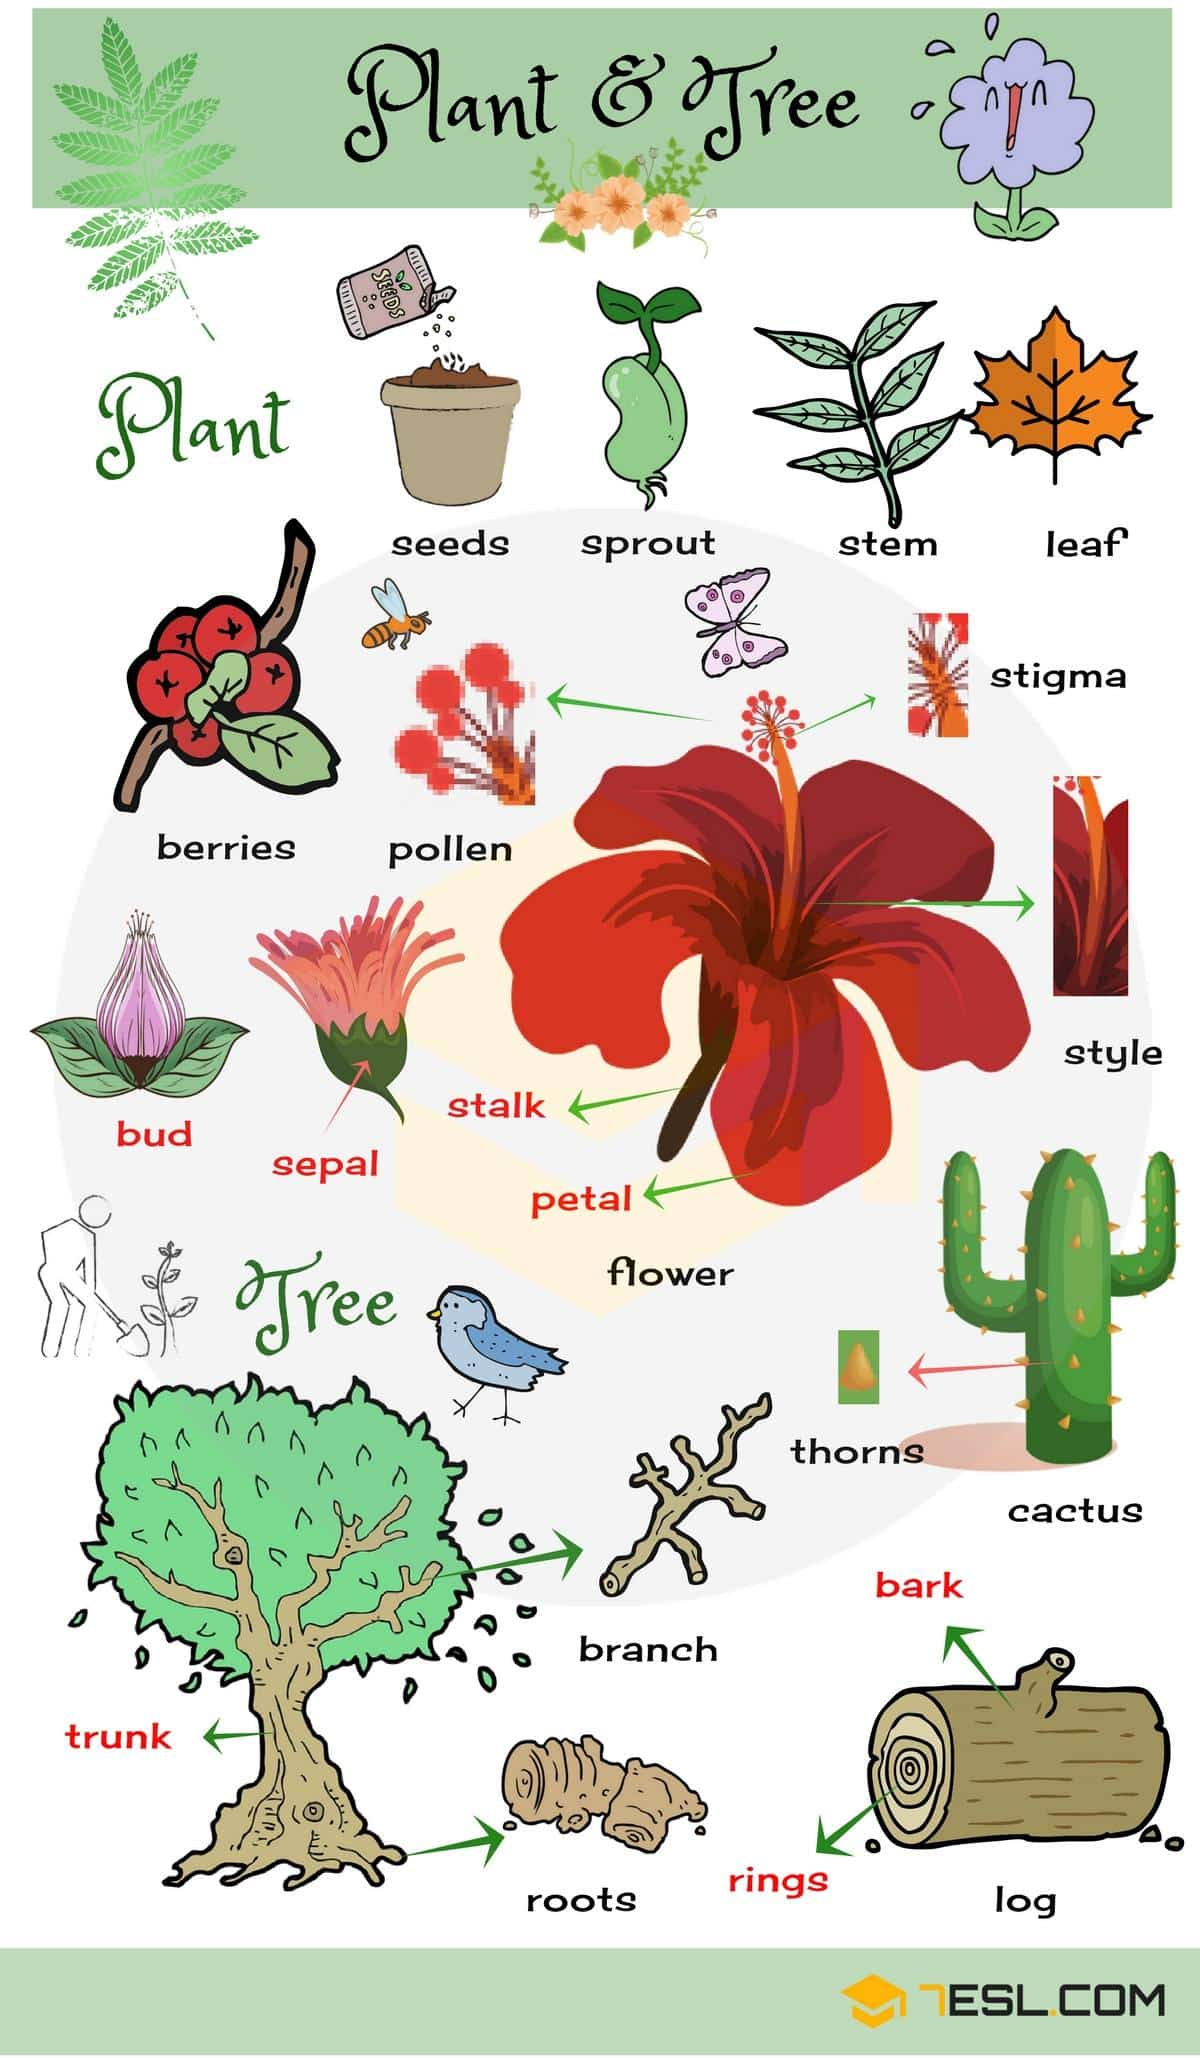 Plants And Trees Vocabulary Plant Names In English